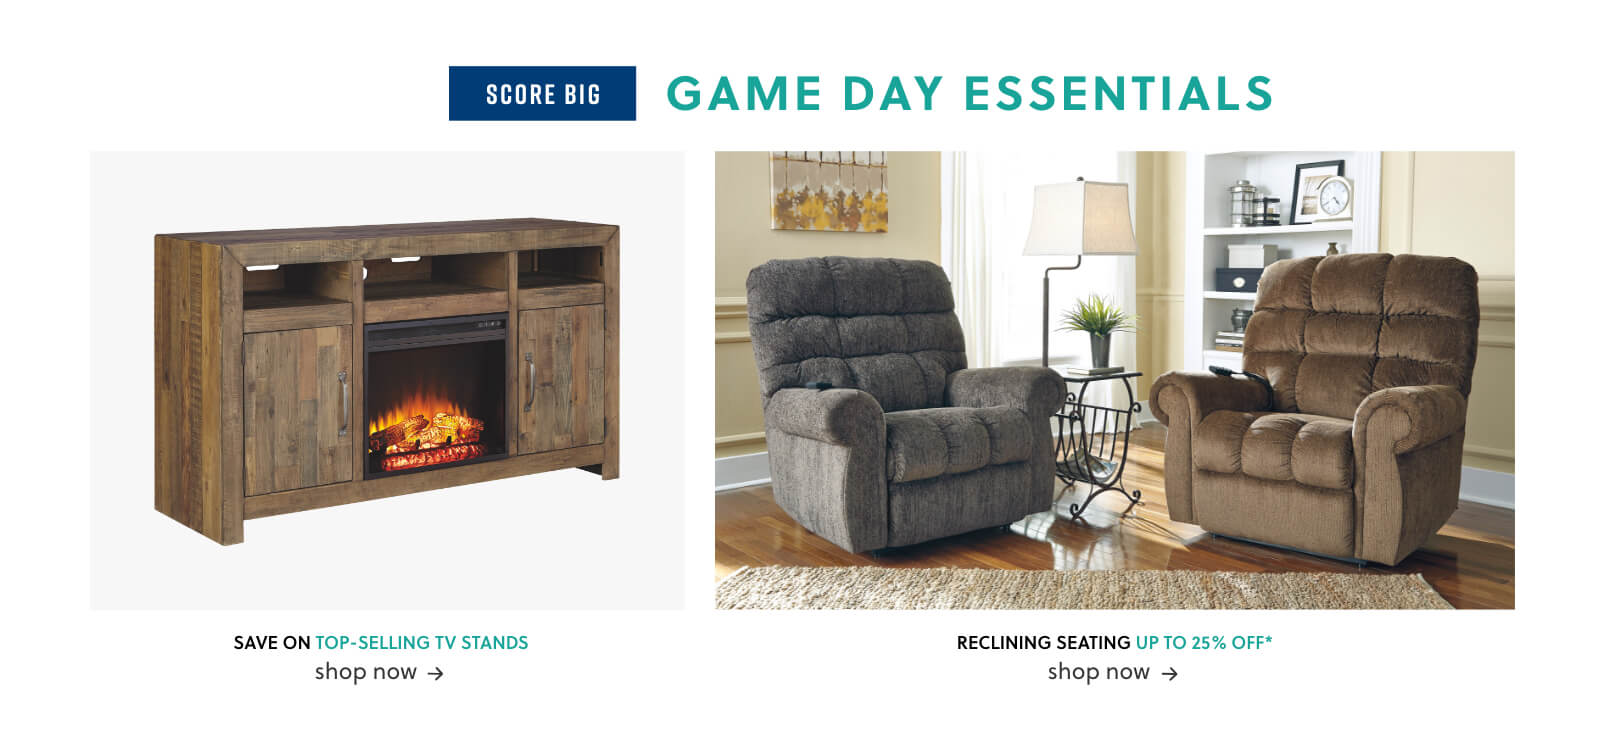 Game Day Furniture Seating, Top-Selling TV Stands, Recliners